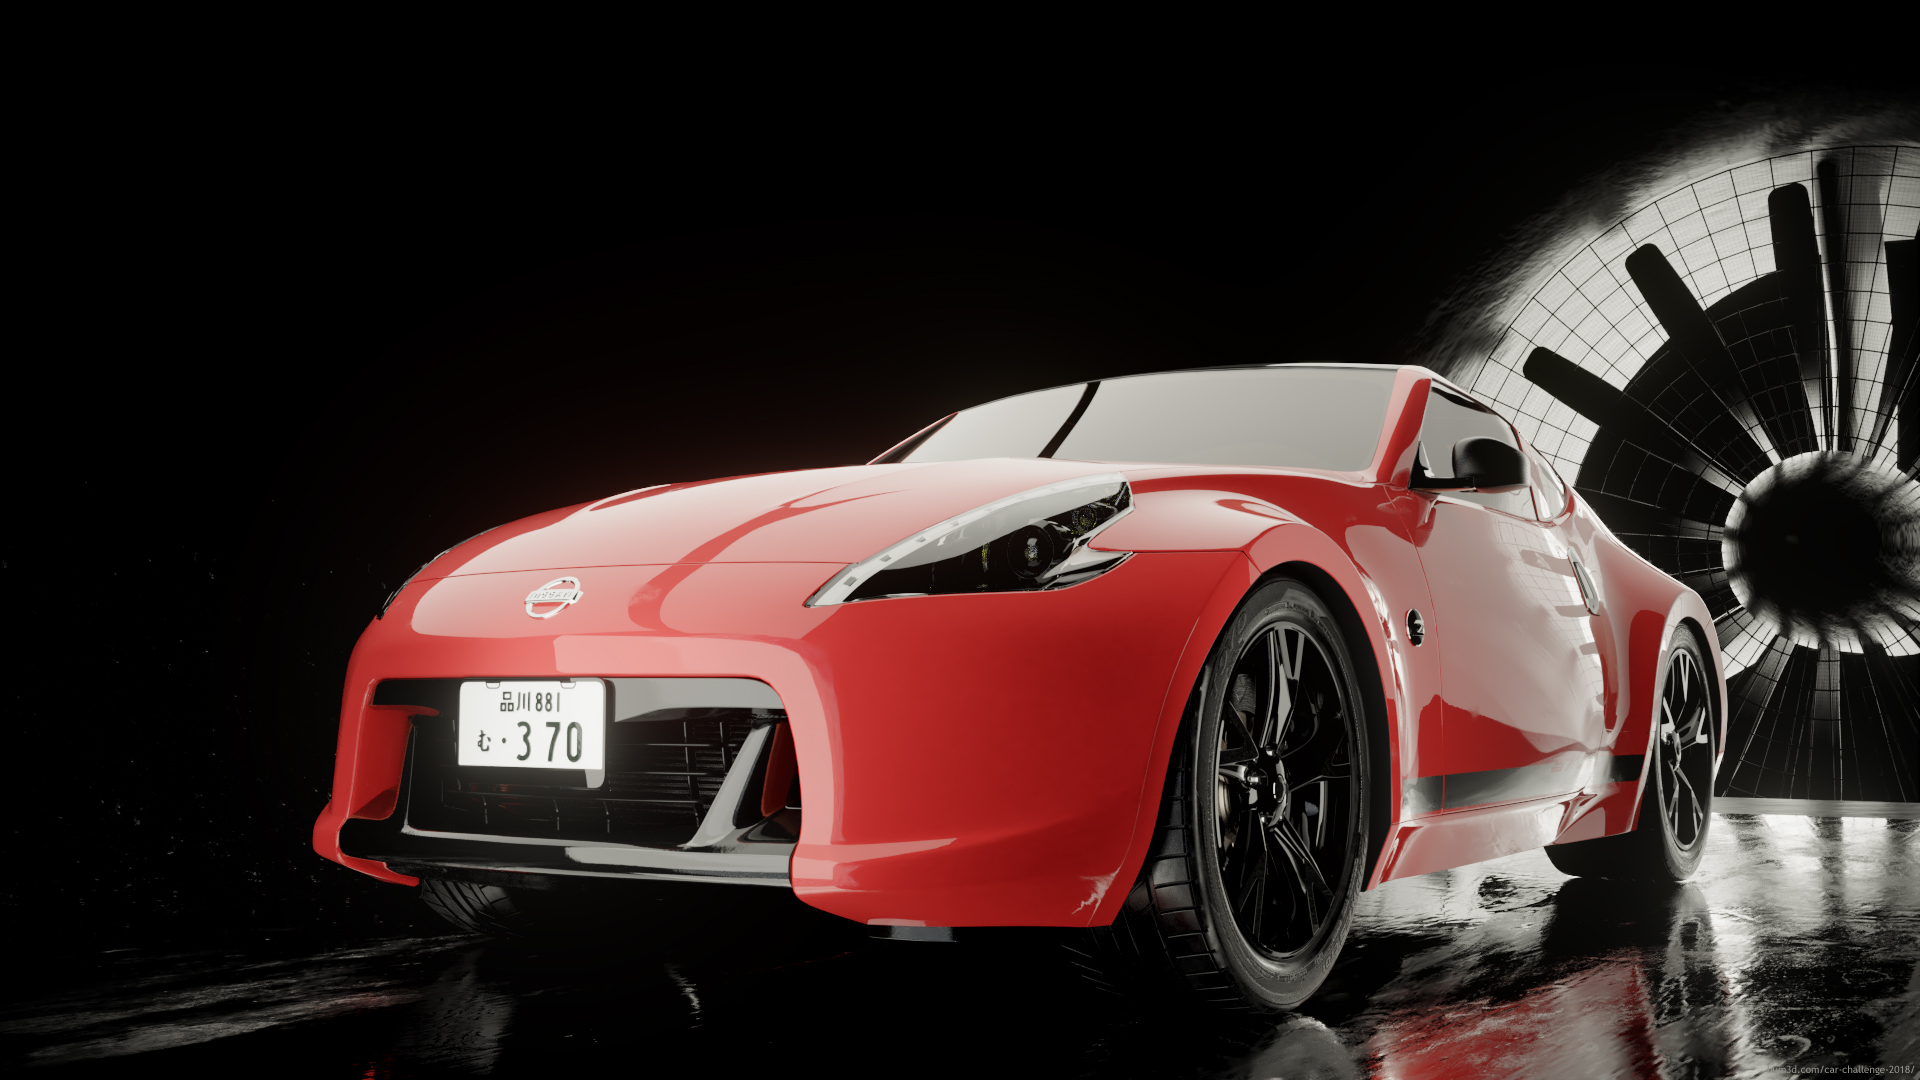 Before the storm – Nissan 370z 3d art